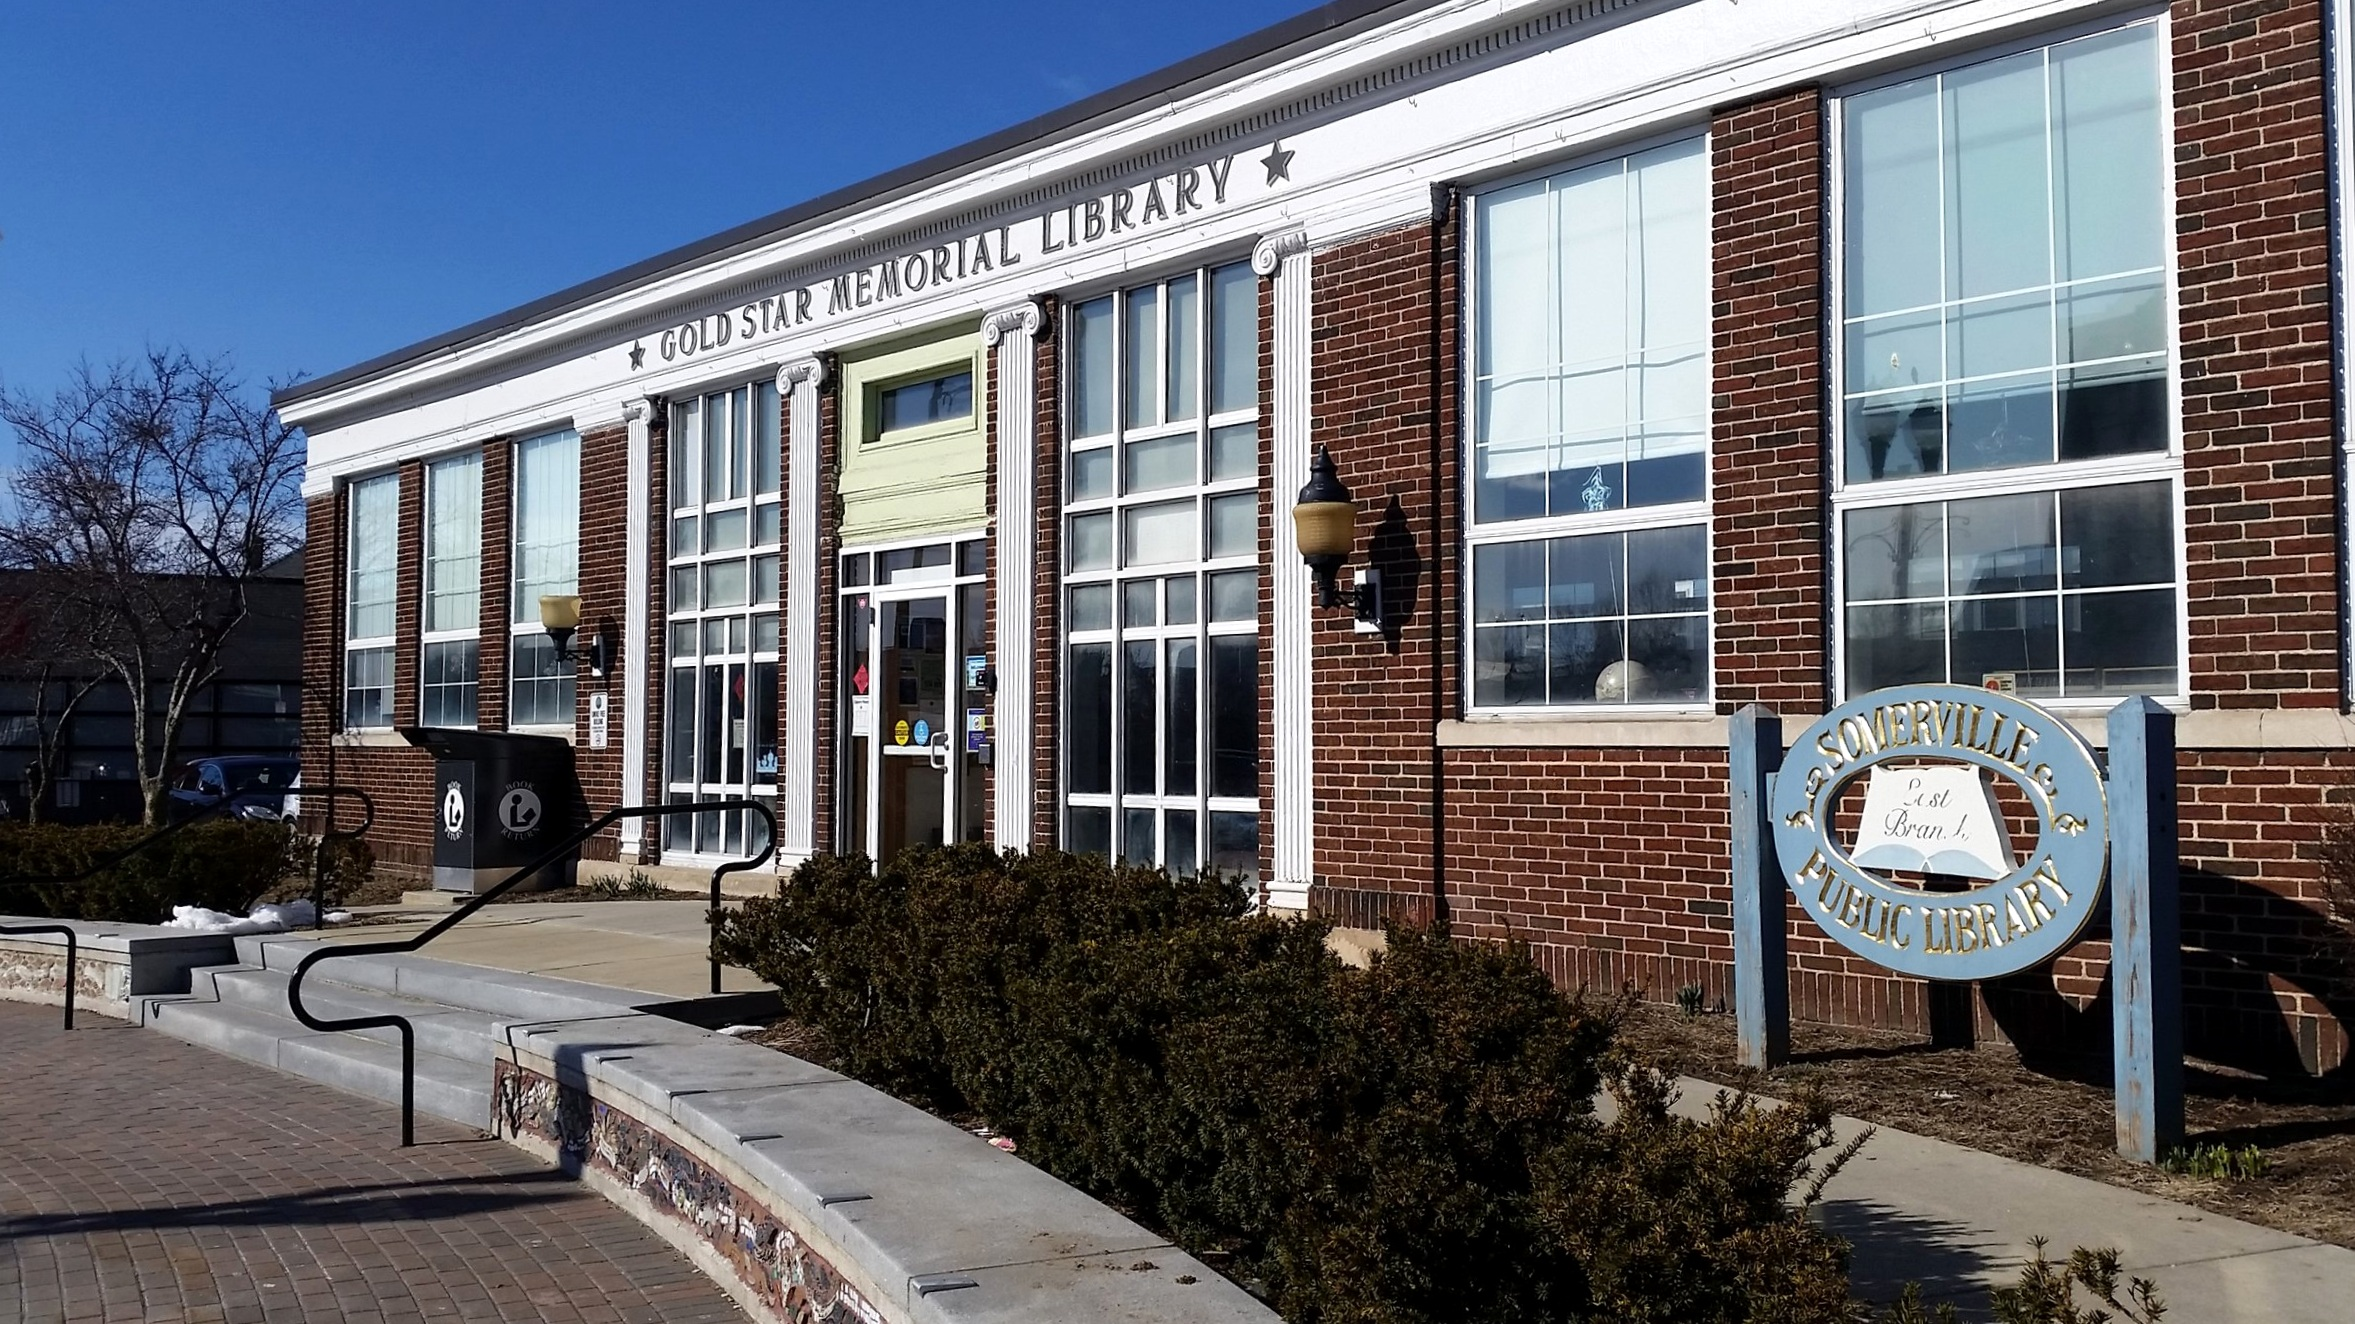 The Somerville East Branch Public Library